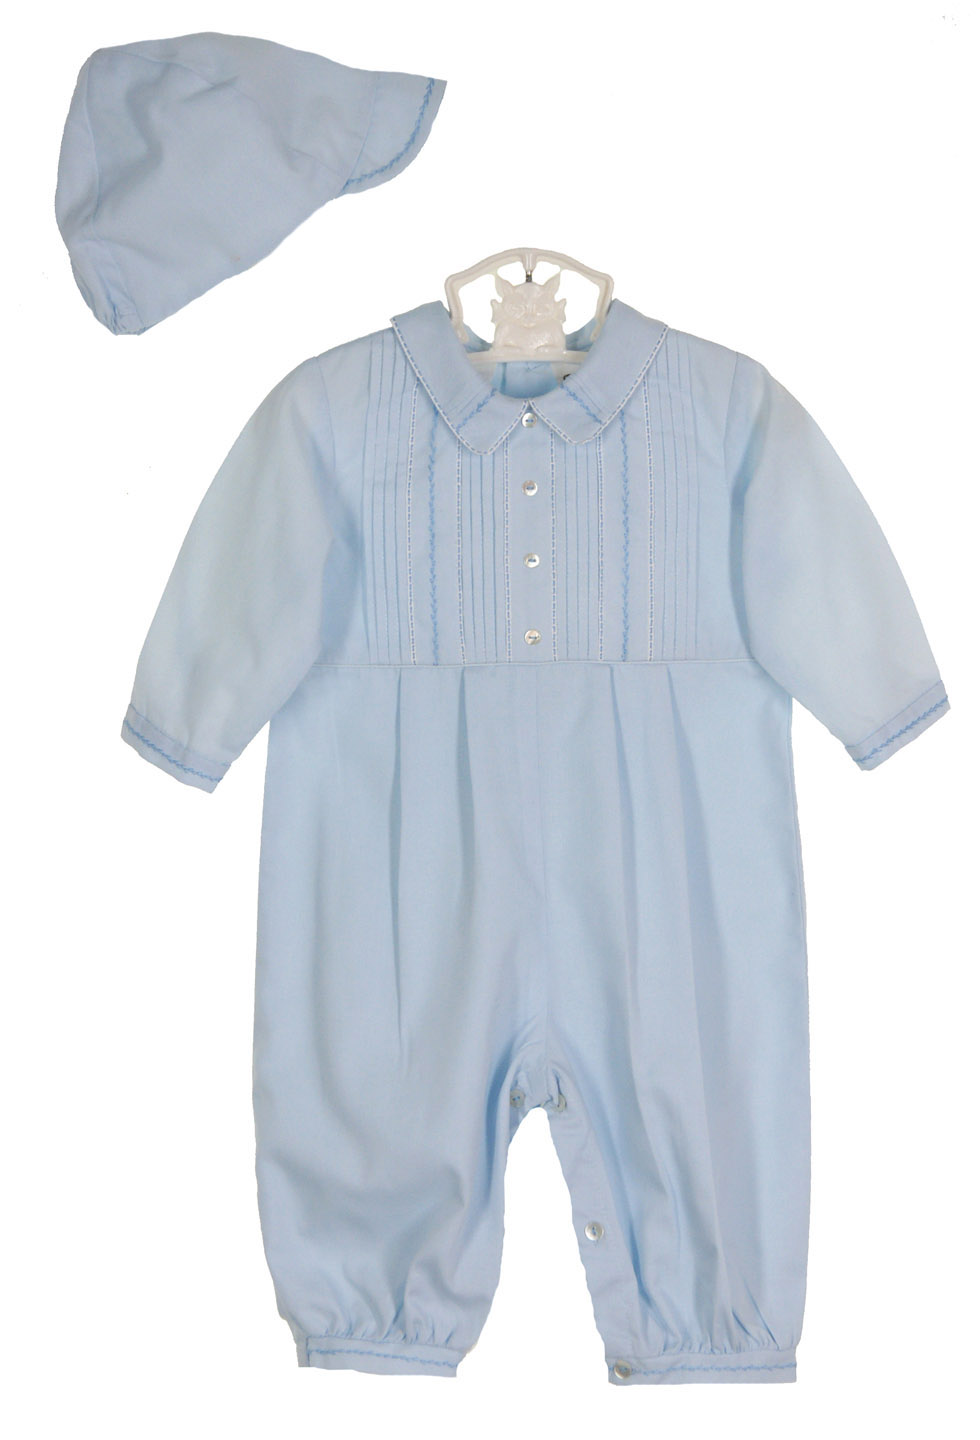 Sarah Louise blue pintucked romper and hat set,blue pintucked romper ...